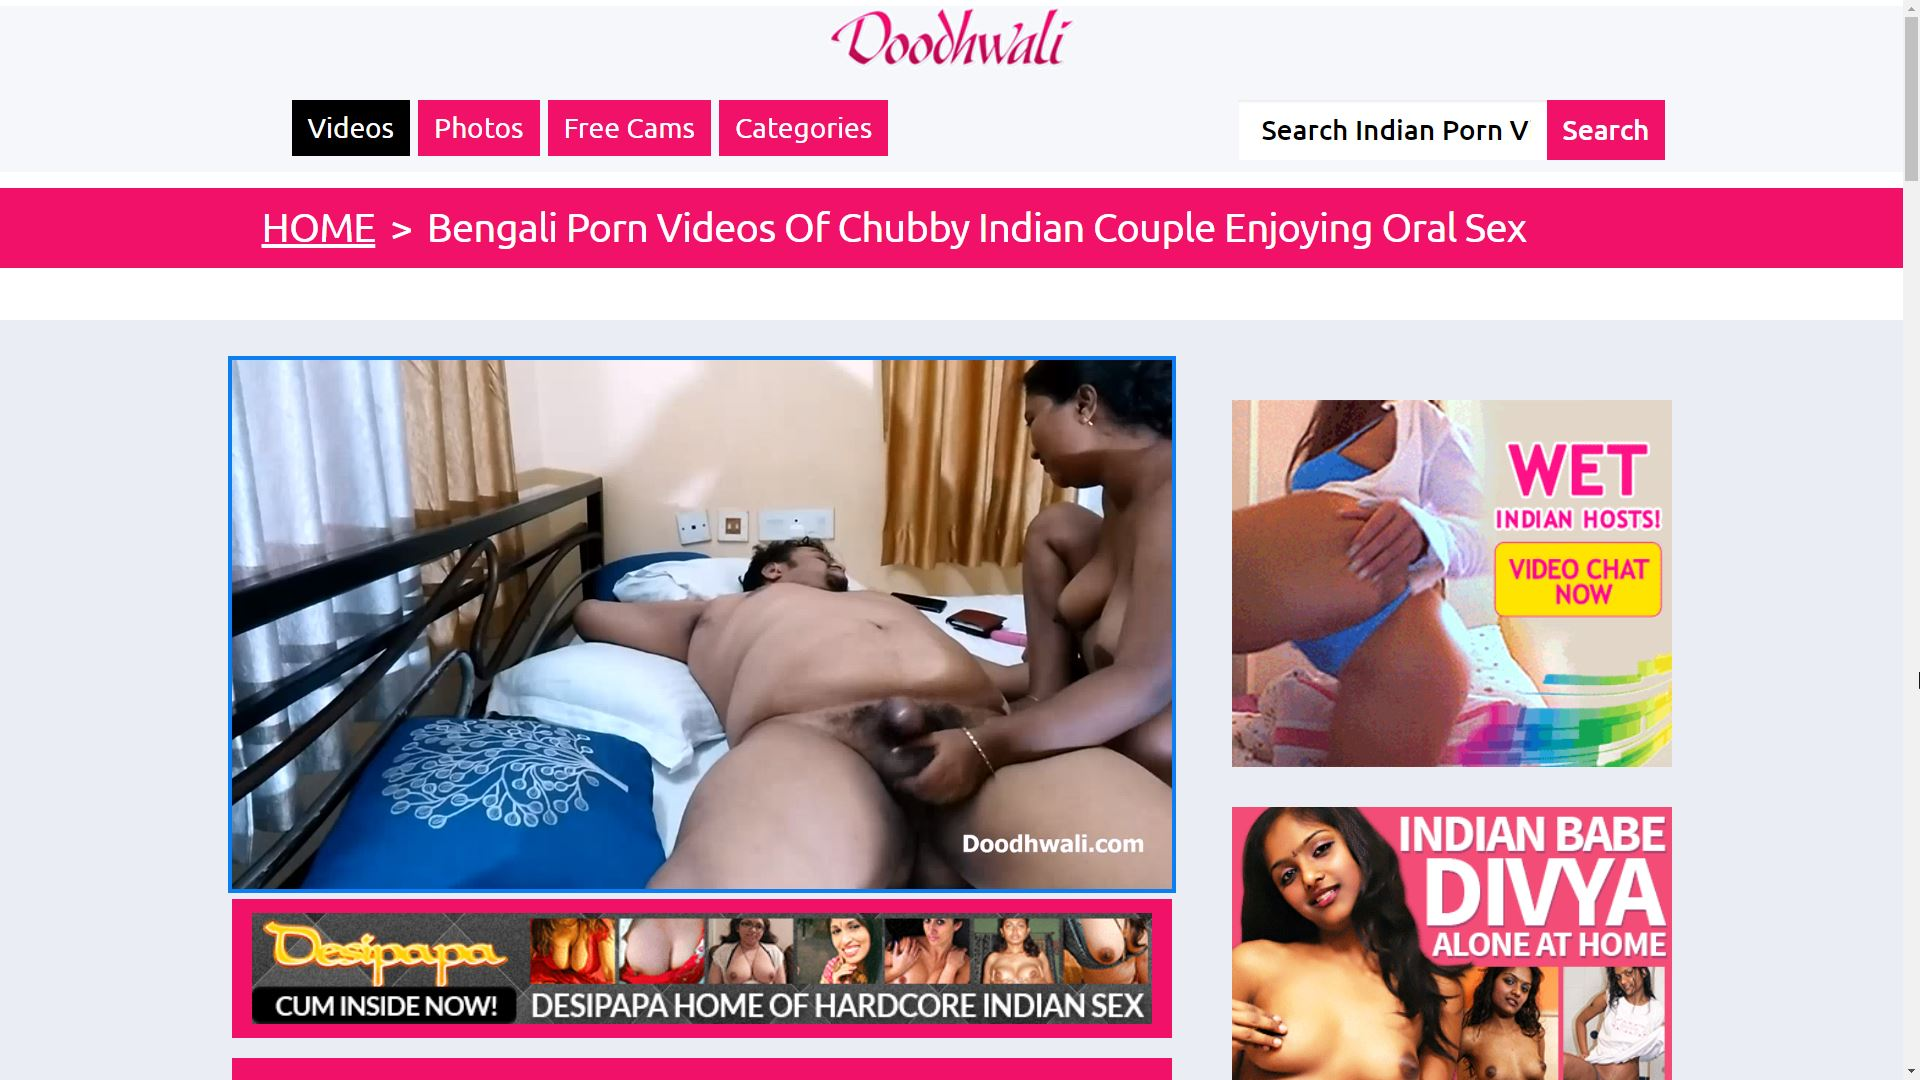 Doodhwali Bengali Porn Videos Of Chubby Indian Couple Enjoying Oral Sex